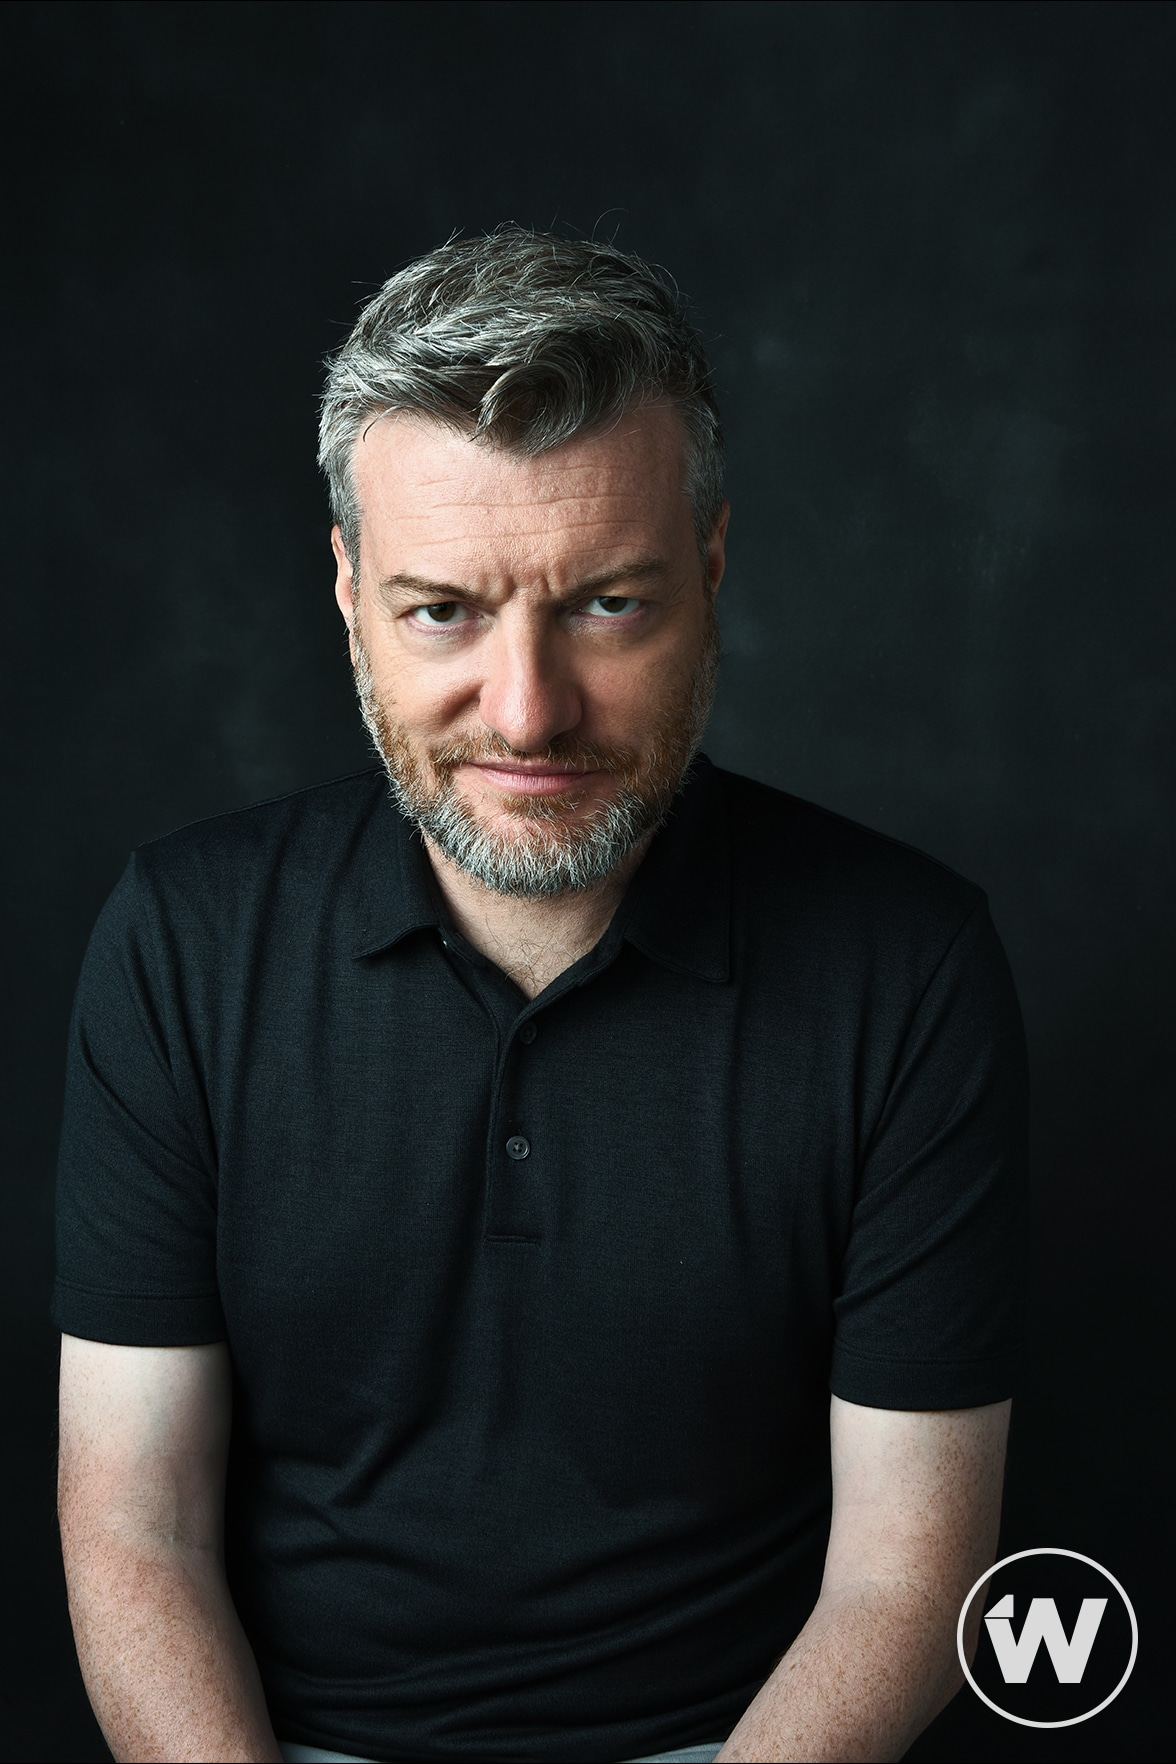 Charlie Brooker, Black Mirror